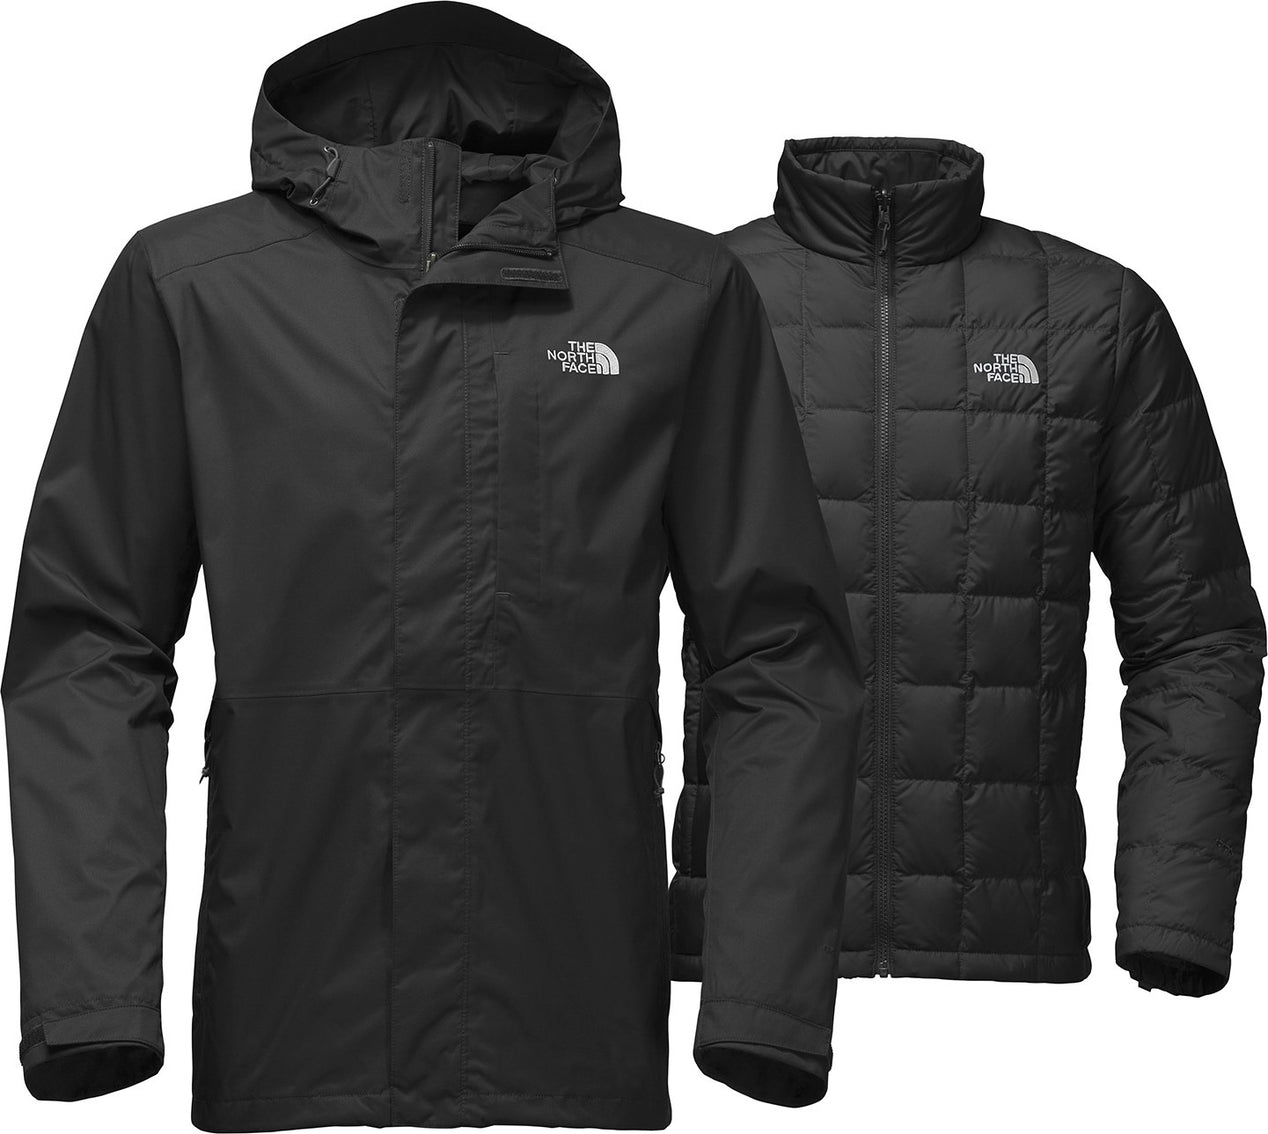 84b0ddc8d0 The North Face Men's Altier Down Triclimate® Jacket | Altitude Sports